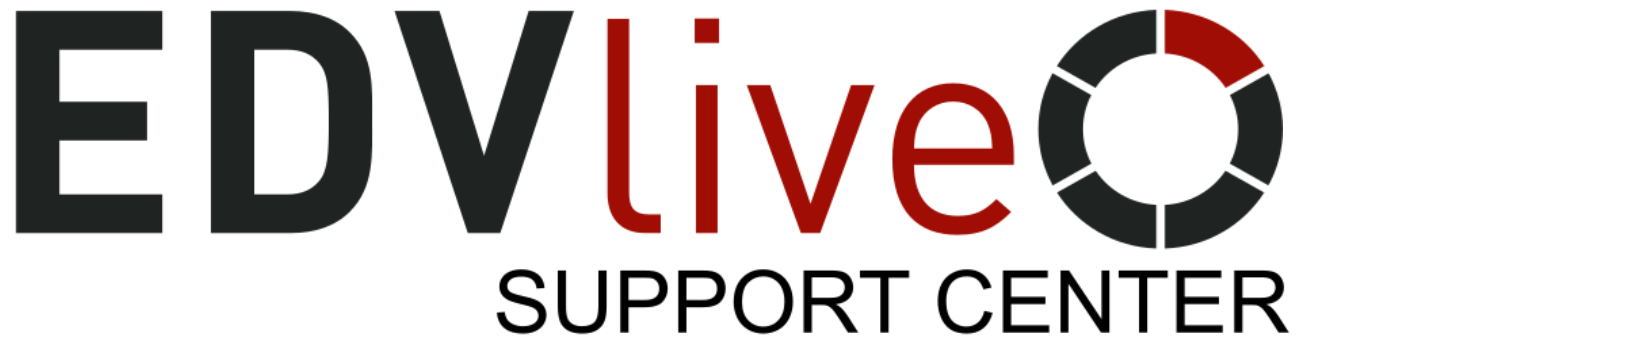 EDV live GmbH & Co. KG - Support Ticket System